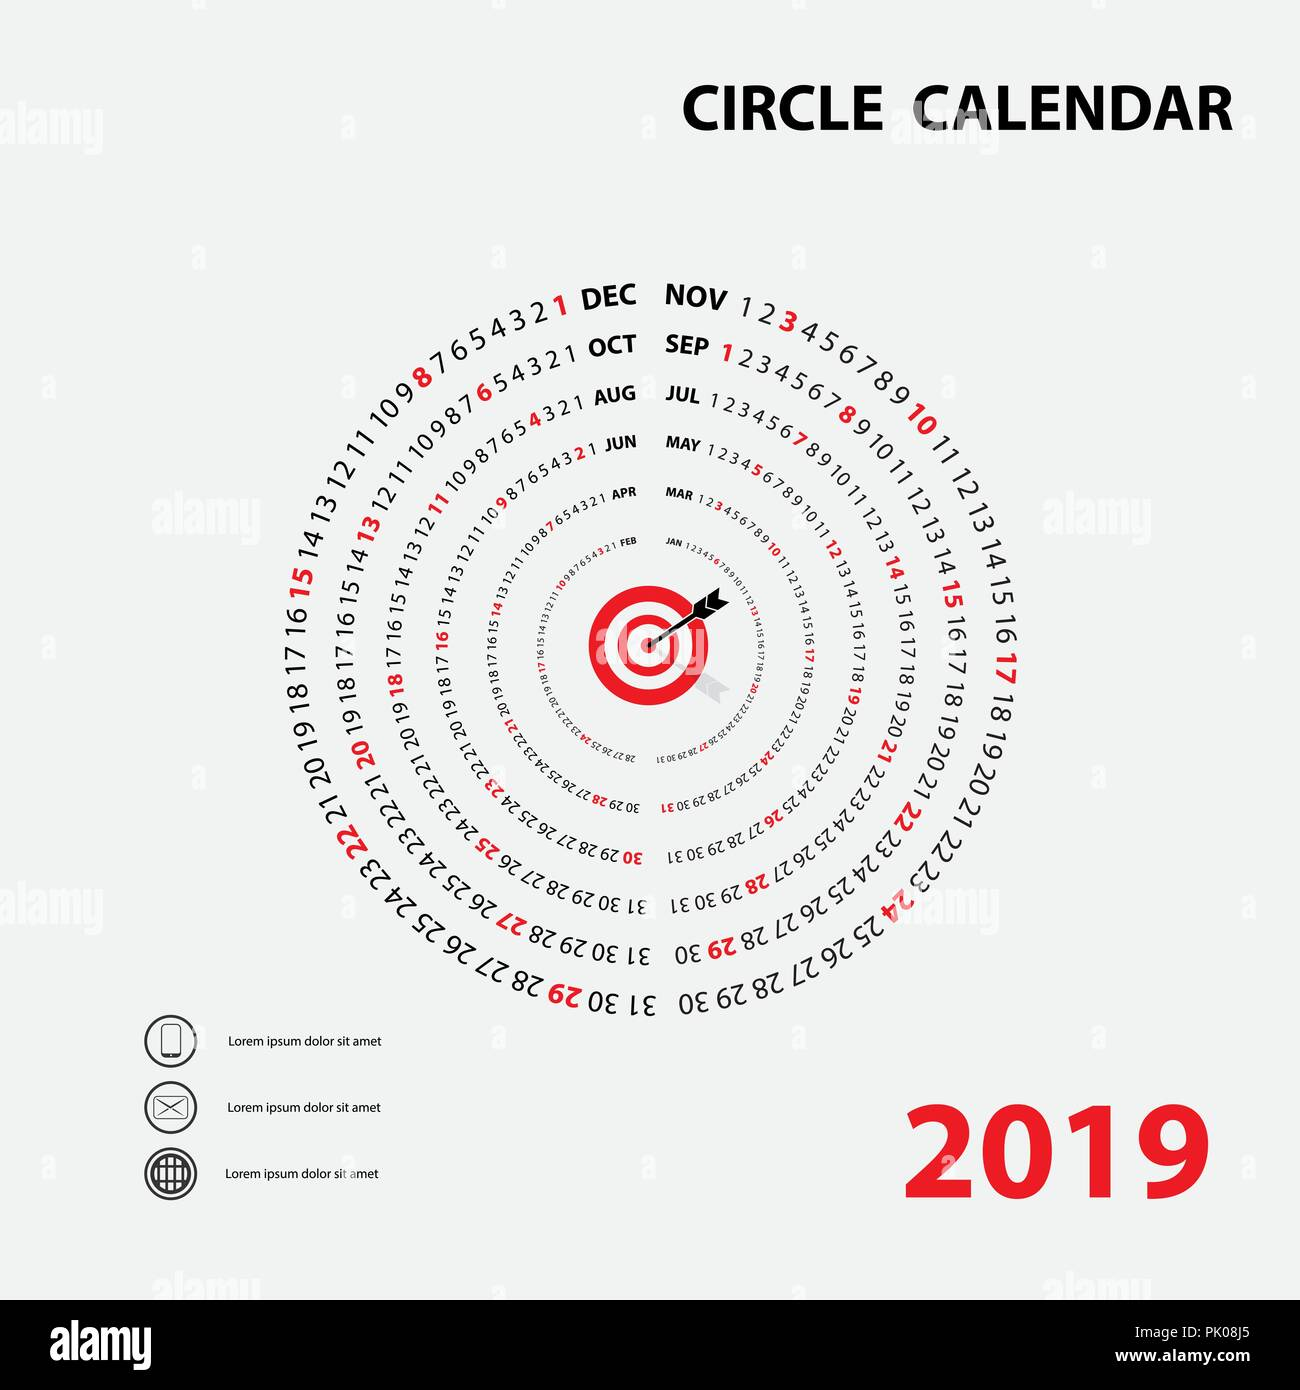 2019 calendar templatecircle calendarcalendar 2019 set of 12 monthsyearly calendar vector design stationery templatehappy new year 2019 background